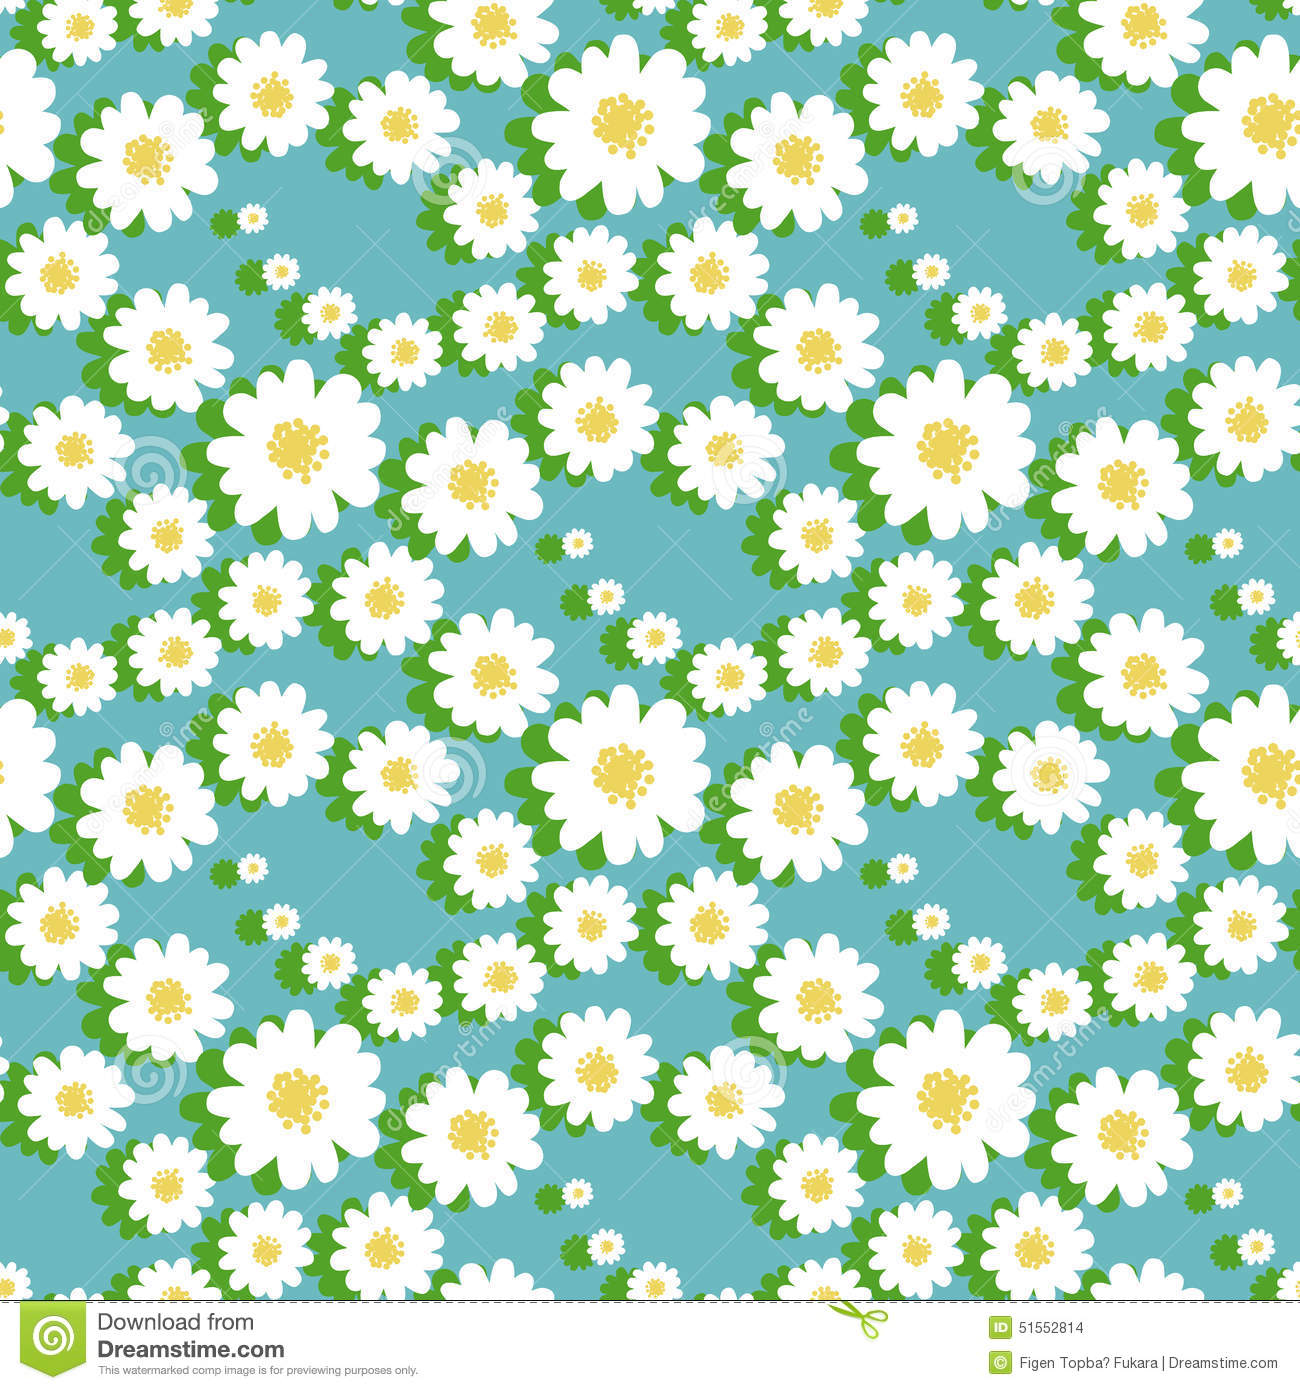 White Daisy Floral Seamless Pattern Stock Vector Illustration Of